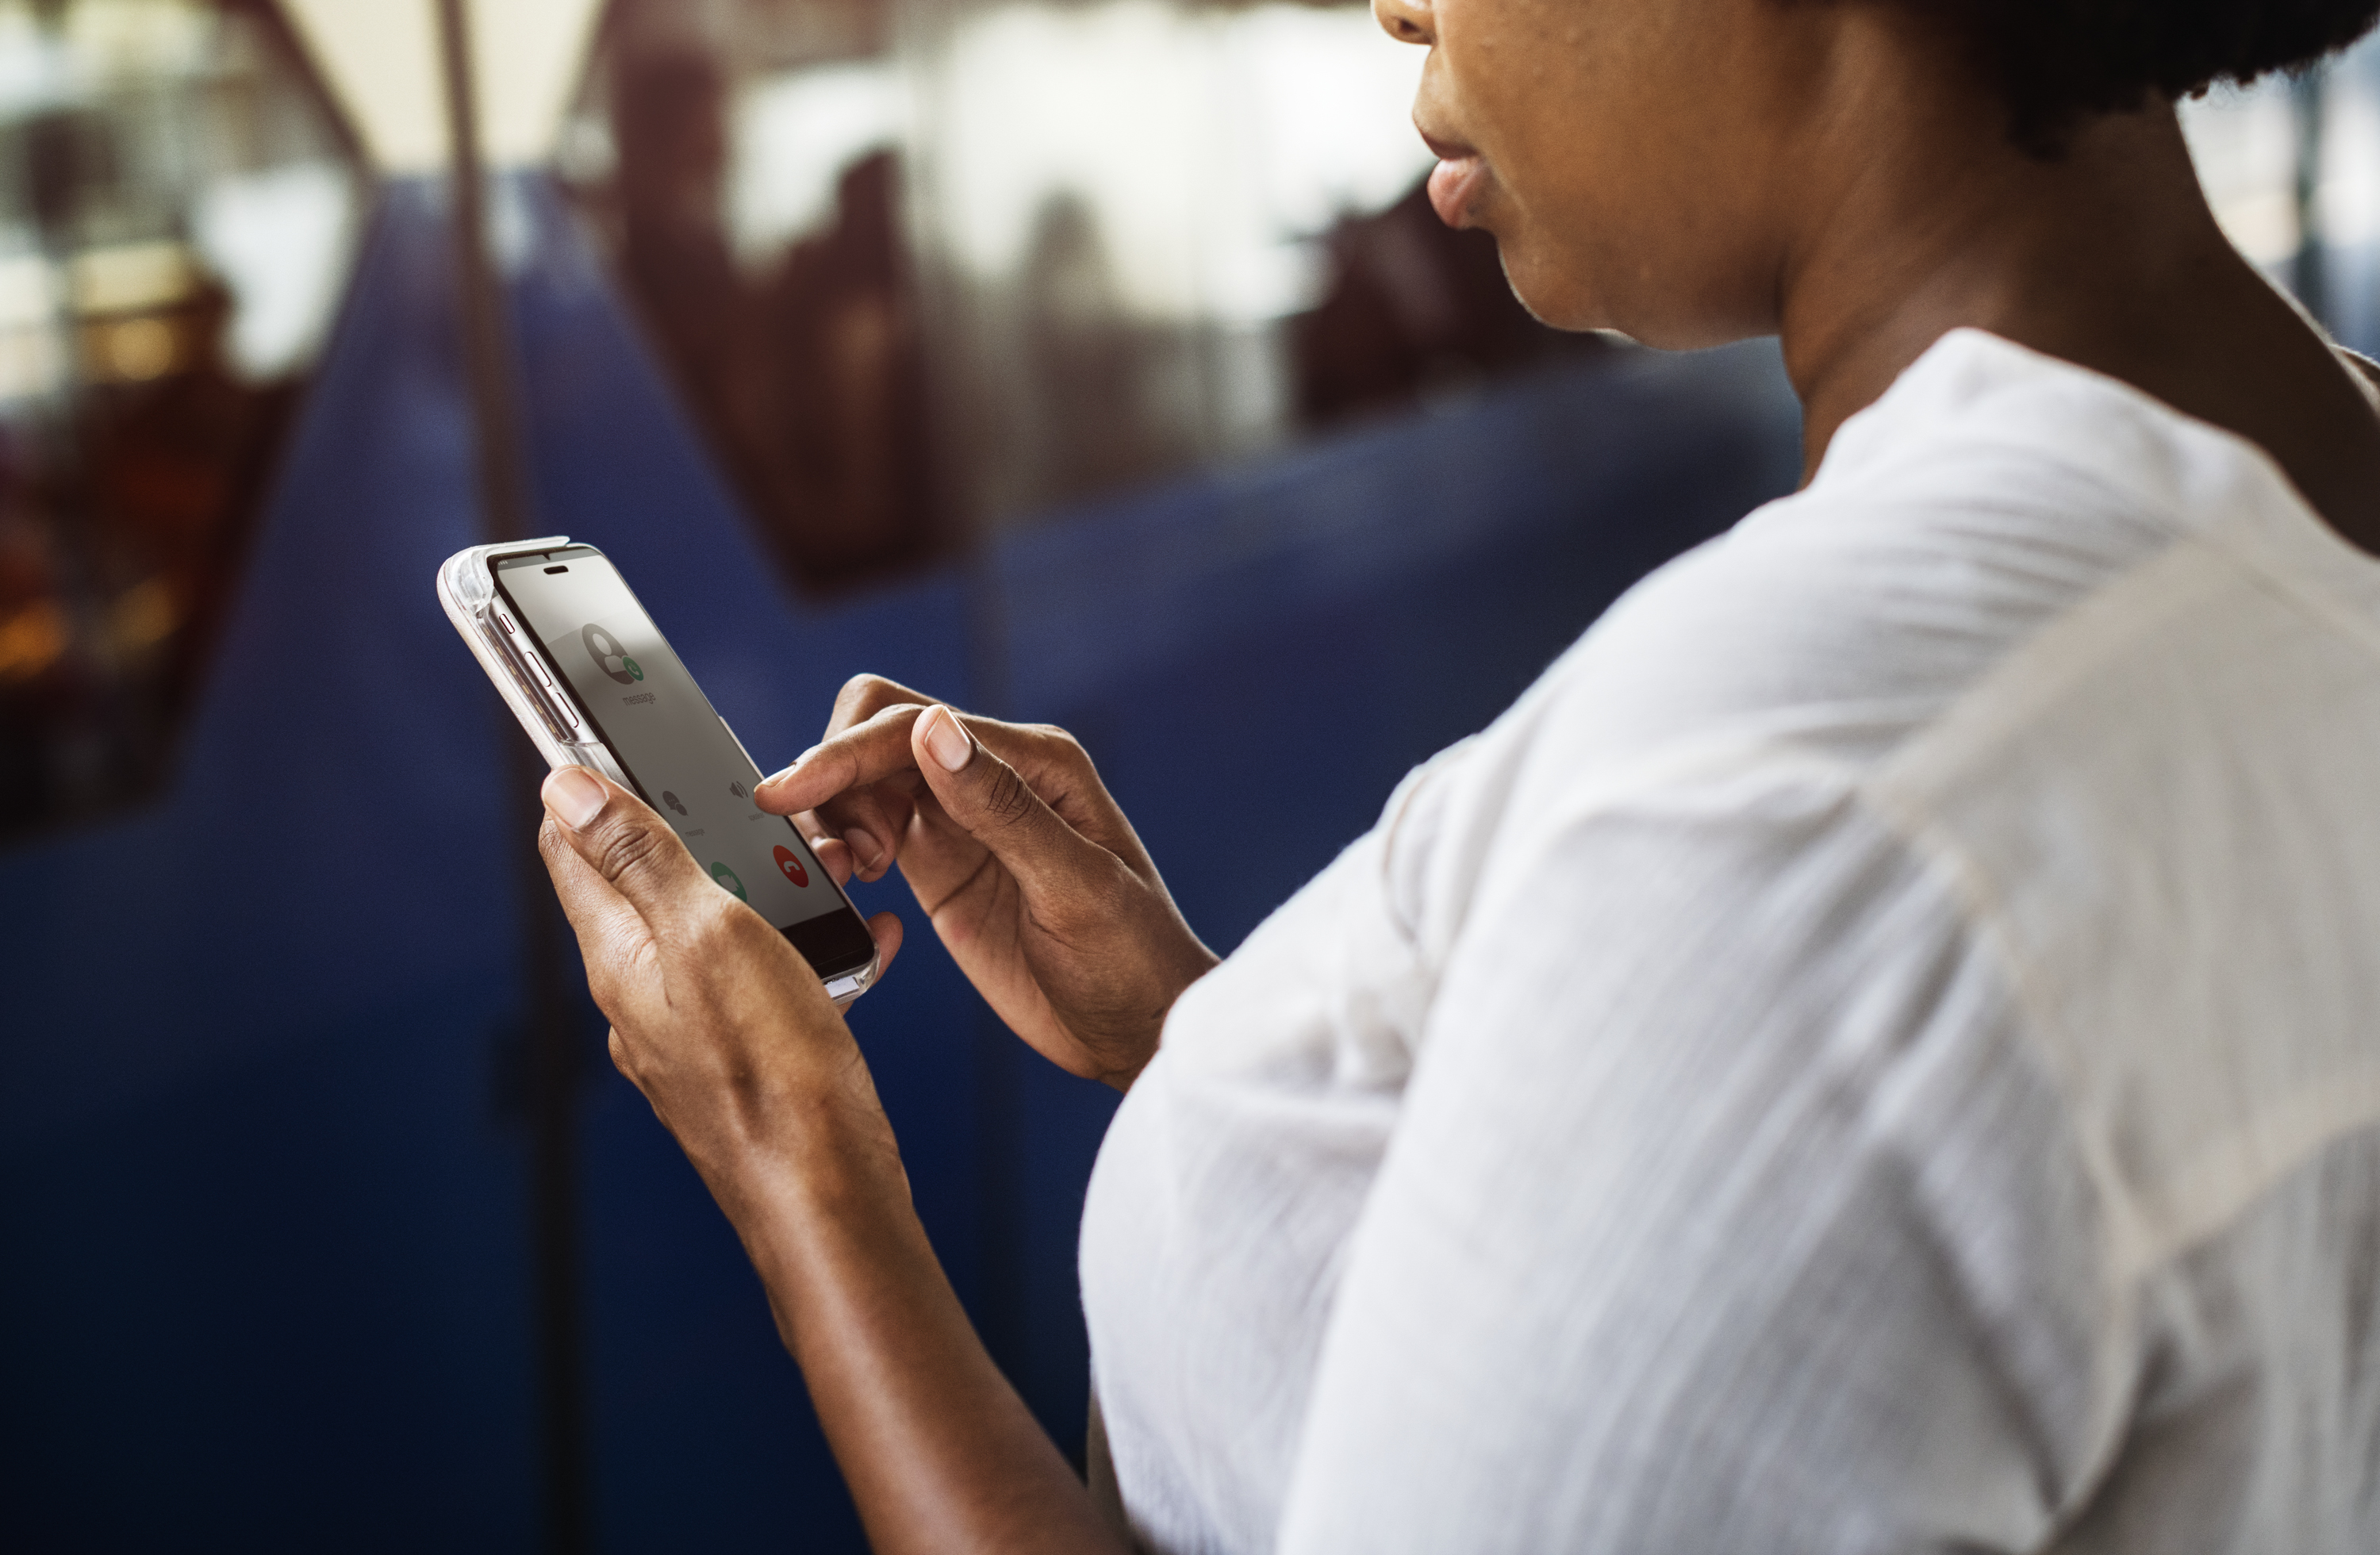 This image is a representation of a social worker checking her phone.